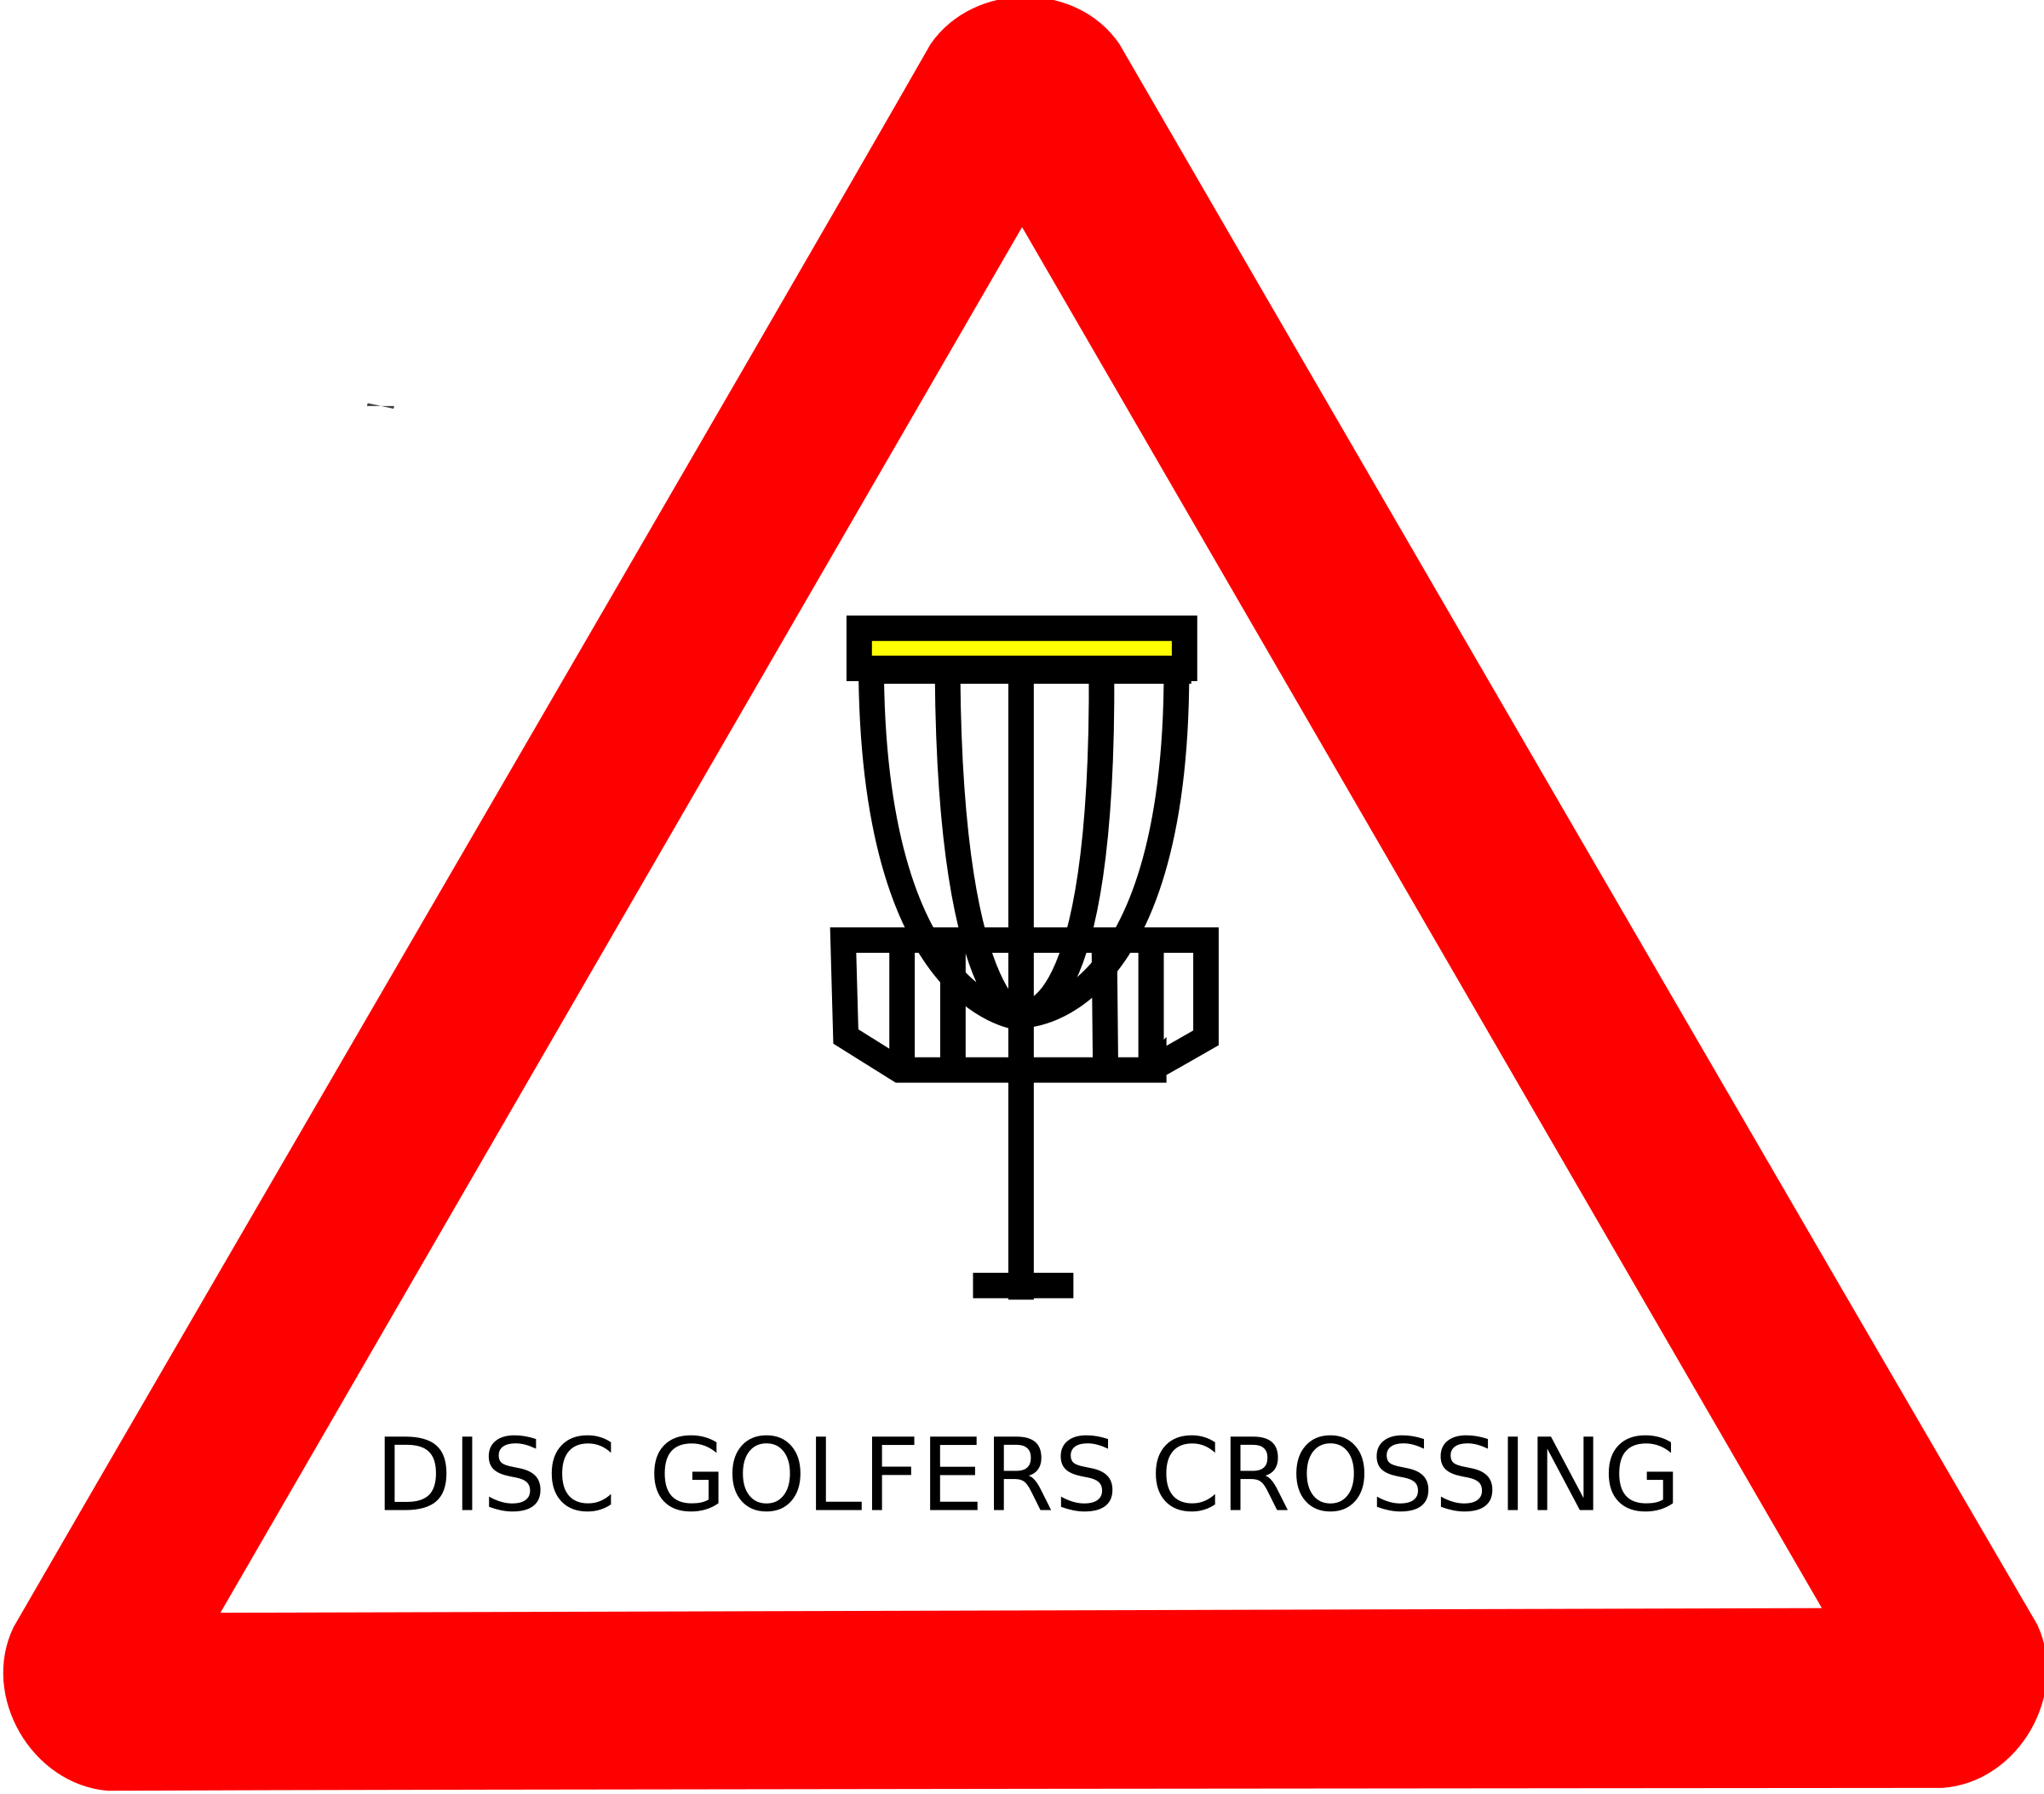 Disc golf roadsign by mat_cutler